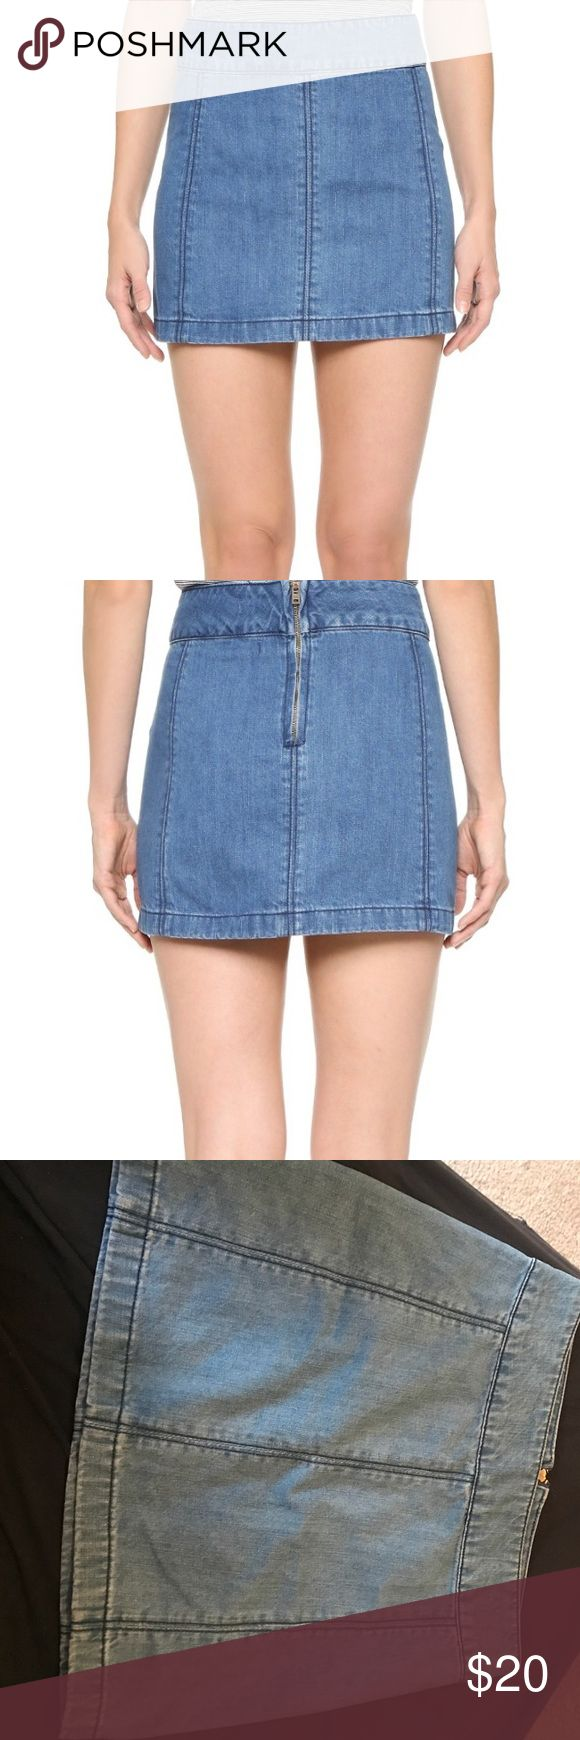 Free people denim zip up skirt. Free People denim zip up skirt. Size 6. Looks awesome on! Only worn a few times with absolutely no signs of wear. Perfect condition. Free People Skirts